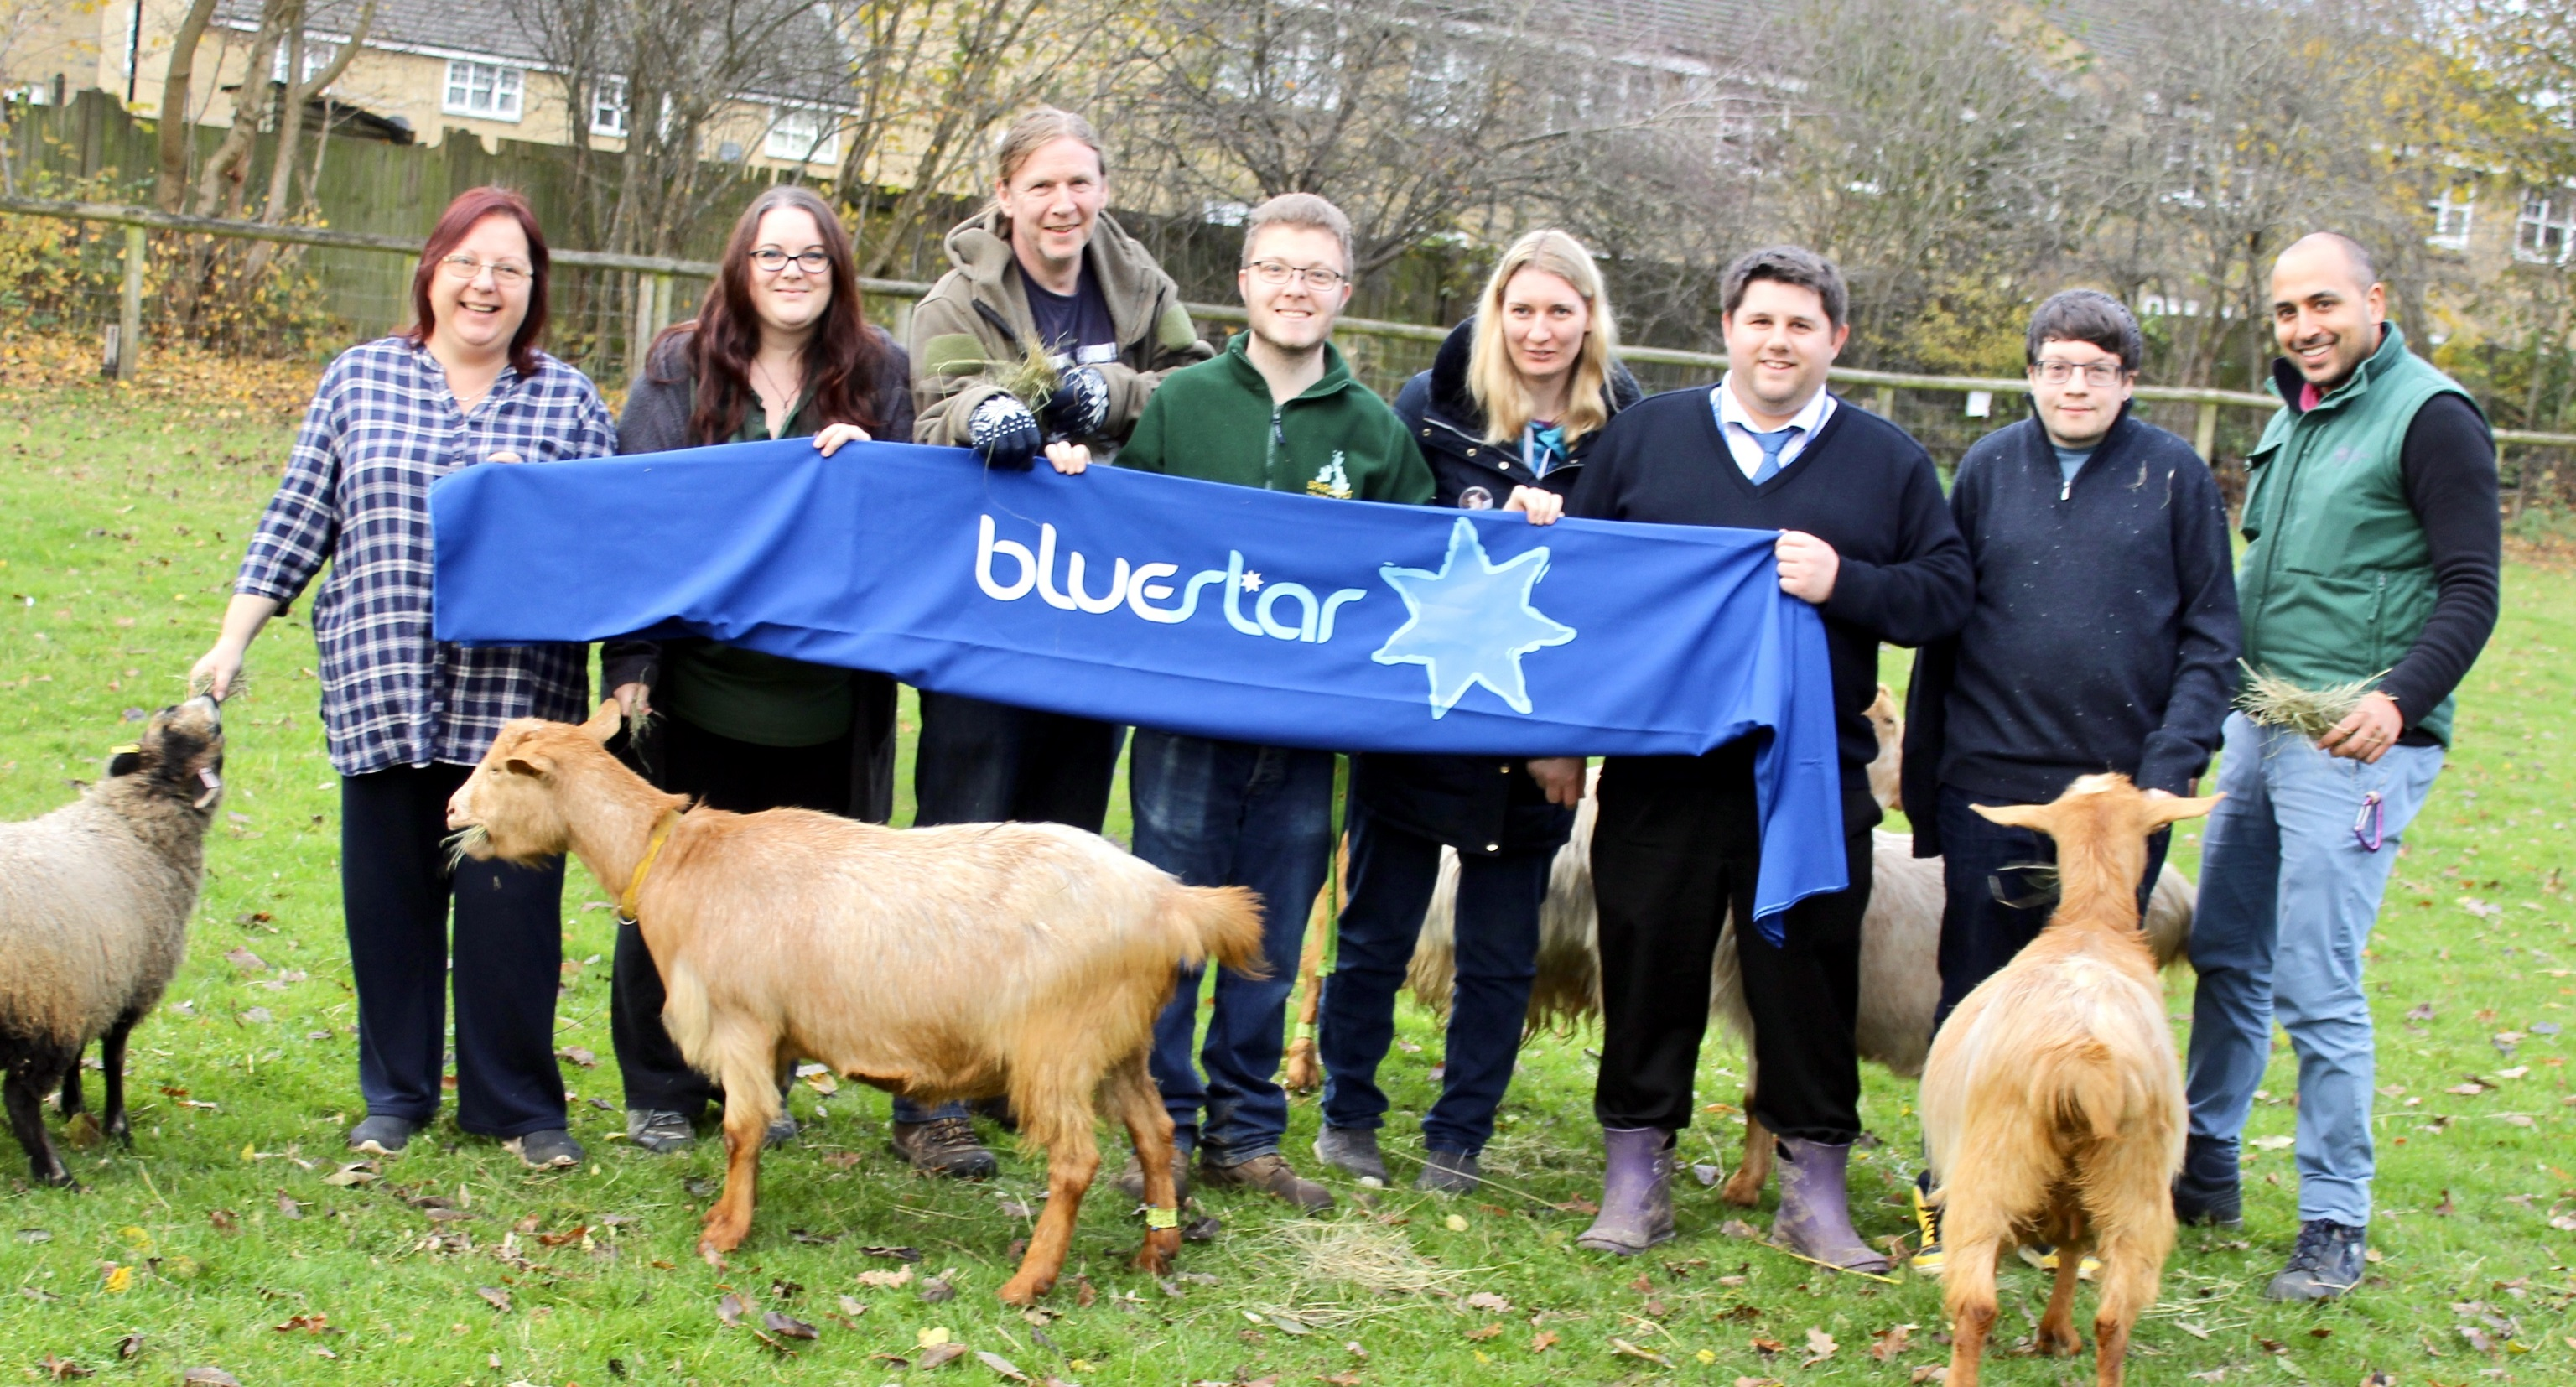 Volunteers from Southampton City Farm and Bluestar's George Miller pose surrounded by farm animals and a banner with the Bluestar logo